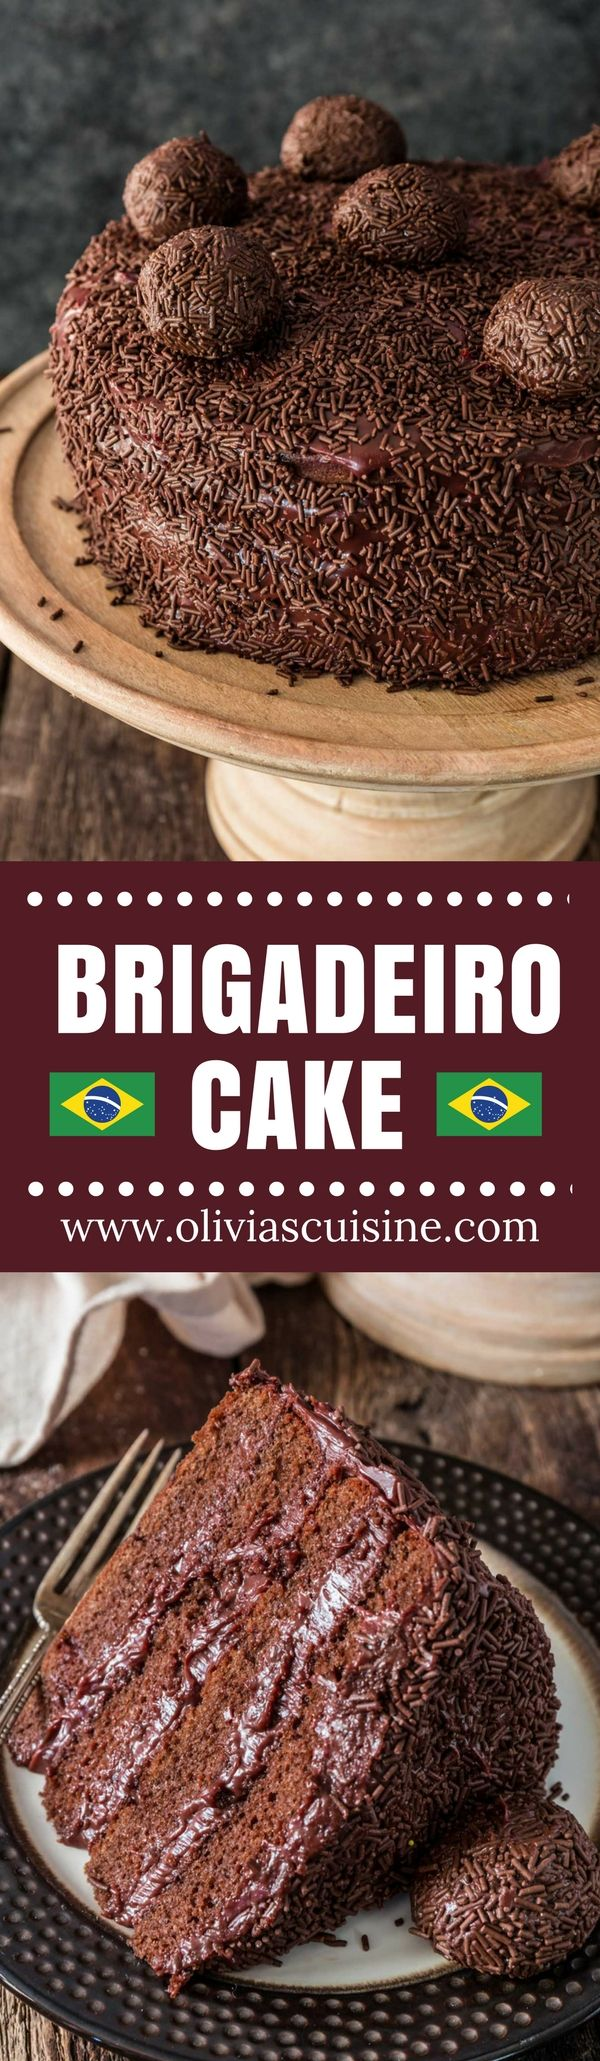 Brigadeiro Cake | www.oliviascuisine.com | Ask any Brazilian what is their favorite cake and you will always get the same answer: brigadeiro cake. Absolutely nothing compares to this rich, fudgy, moist chocolate cake! If you love brigadeiro, this is a must-try! (Recipe and food photography by @oliviascuisine.) AD #NestléMediaCrema